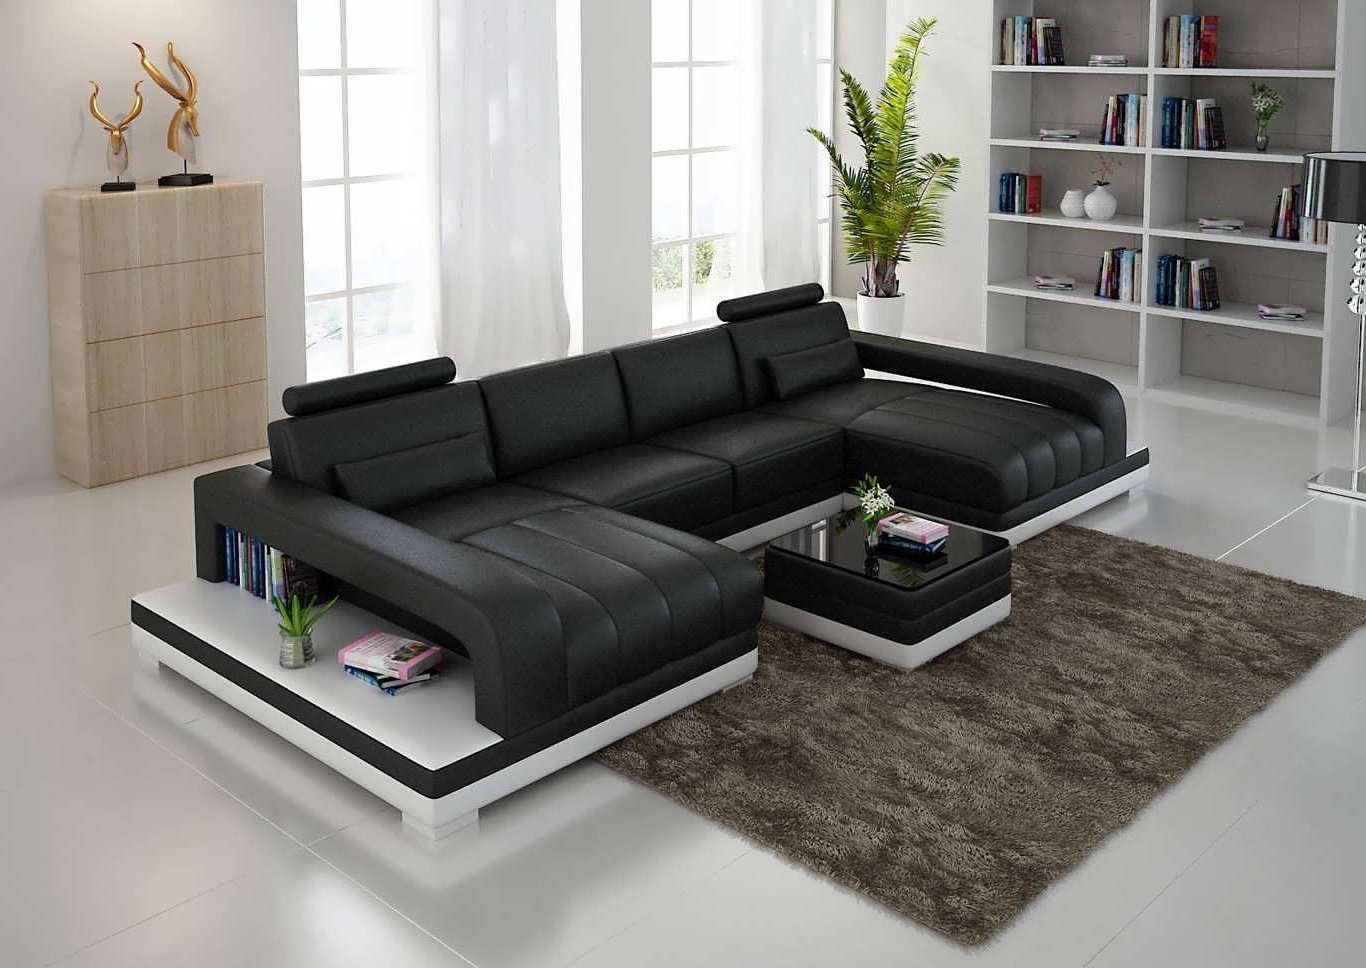 Sofa : Black Sectional Sofa Fabric Sectional Sofas Double Chaise Throughout Newest Double Chaise Sectional Sofas (View 6 of 15)